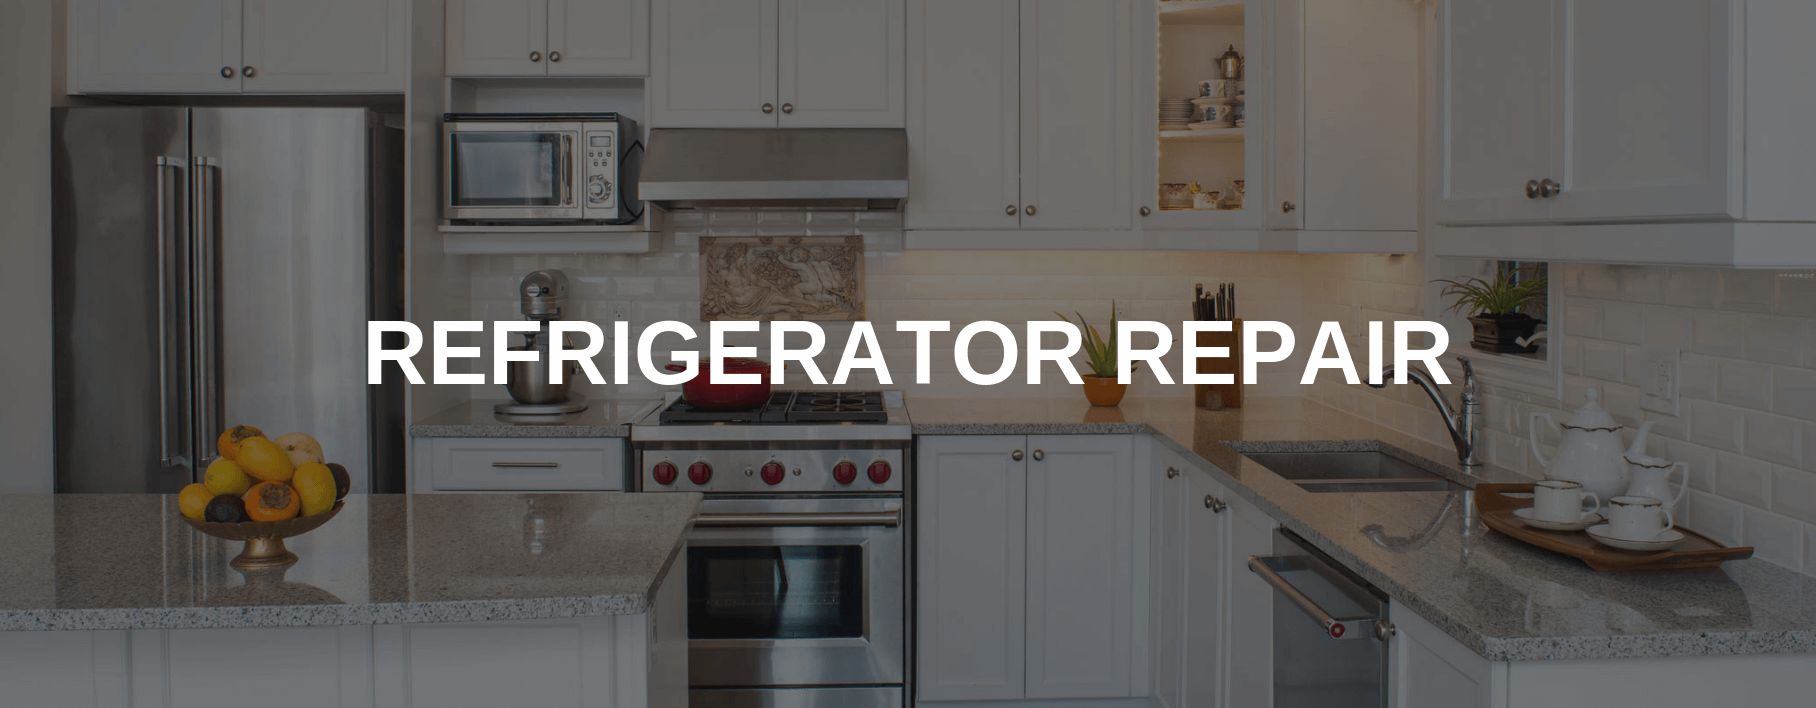 forest hills refrigerator repair